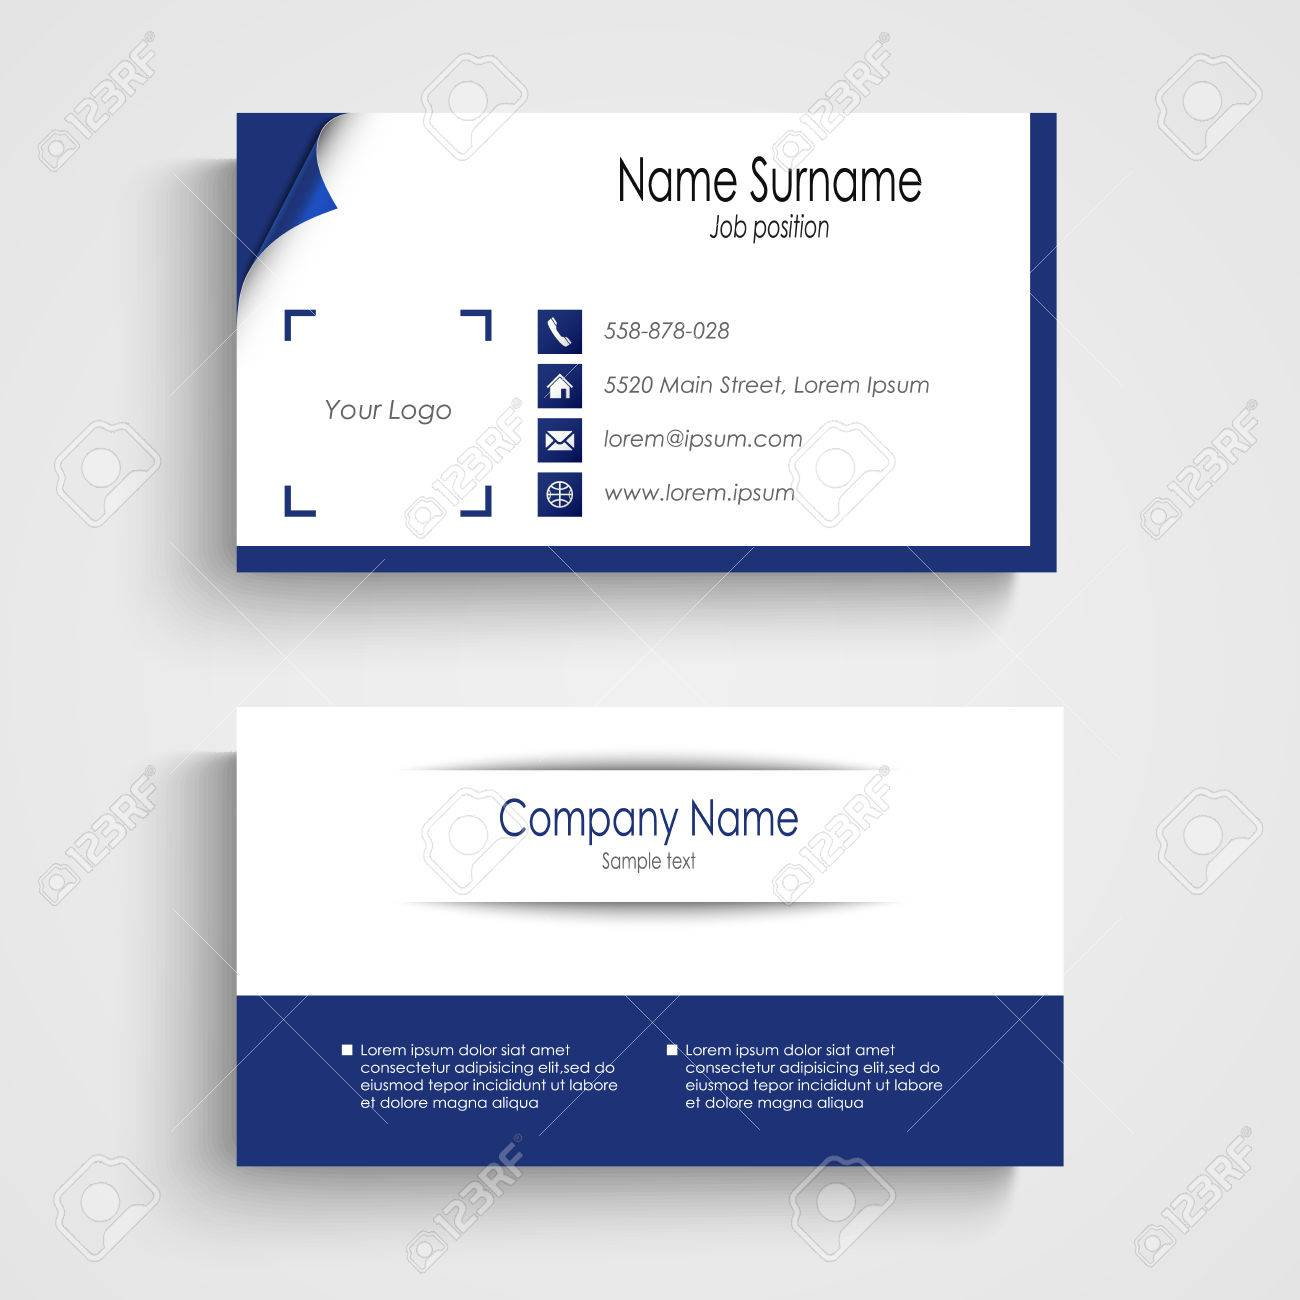 Hvac Business Card Template Image collections - Templates Example ...